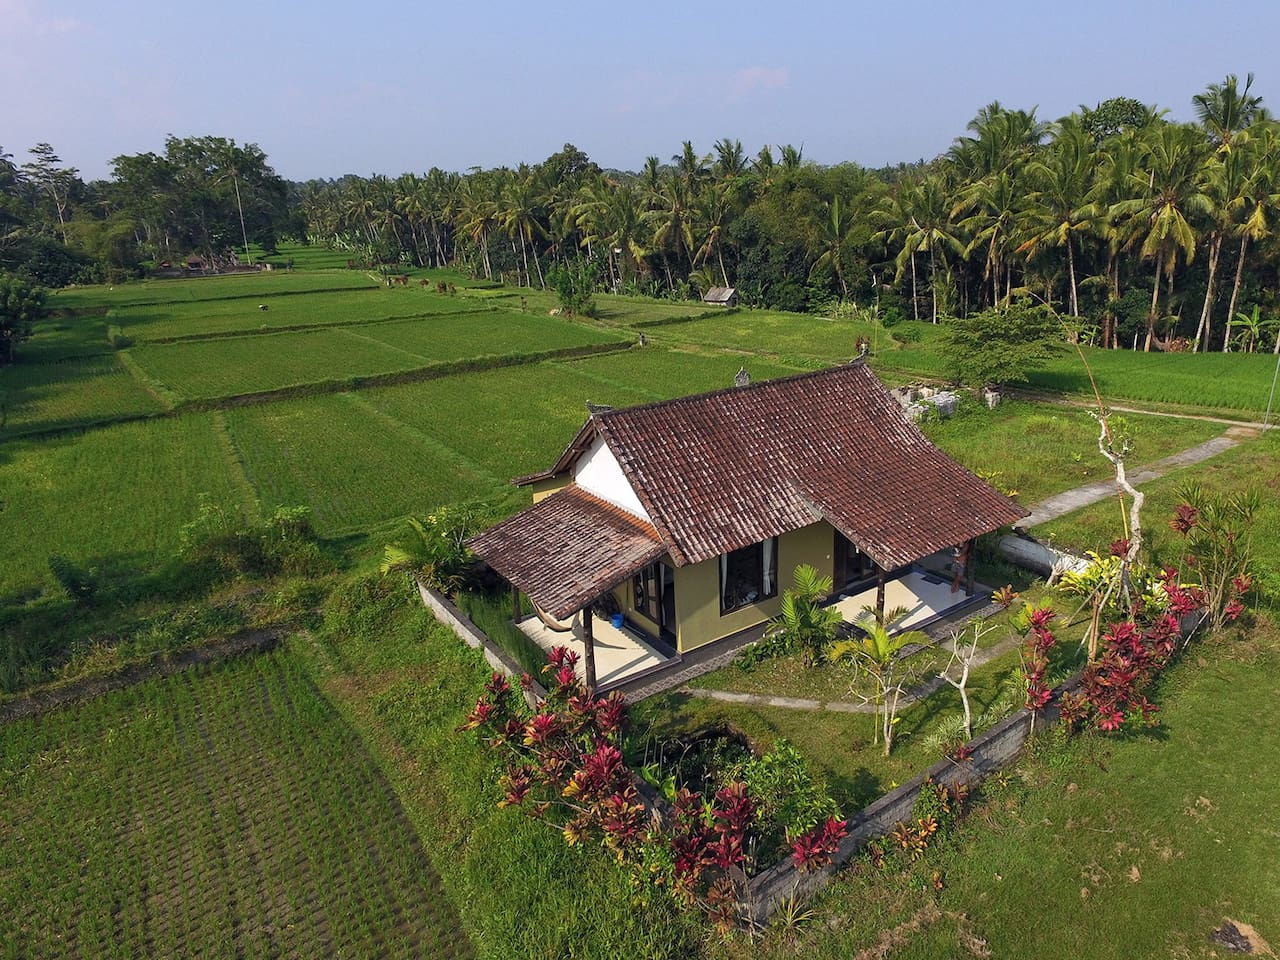 COZY AND CLEAN HOUSE in Rice fields